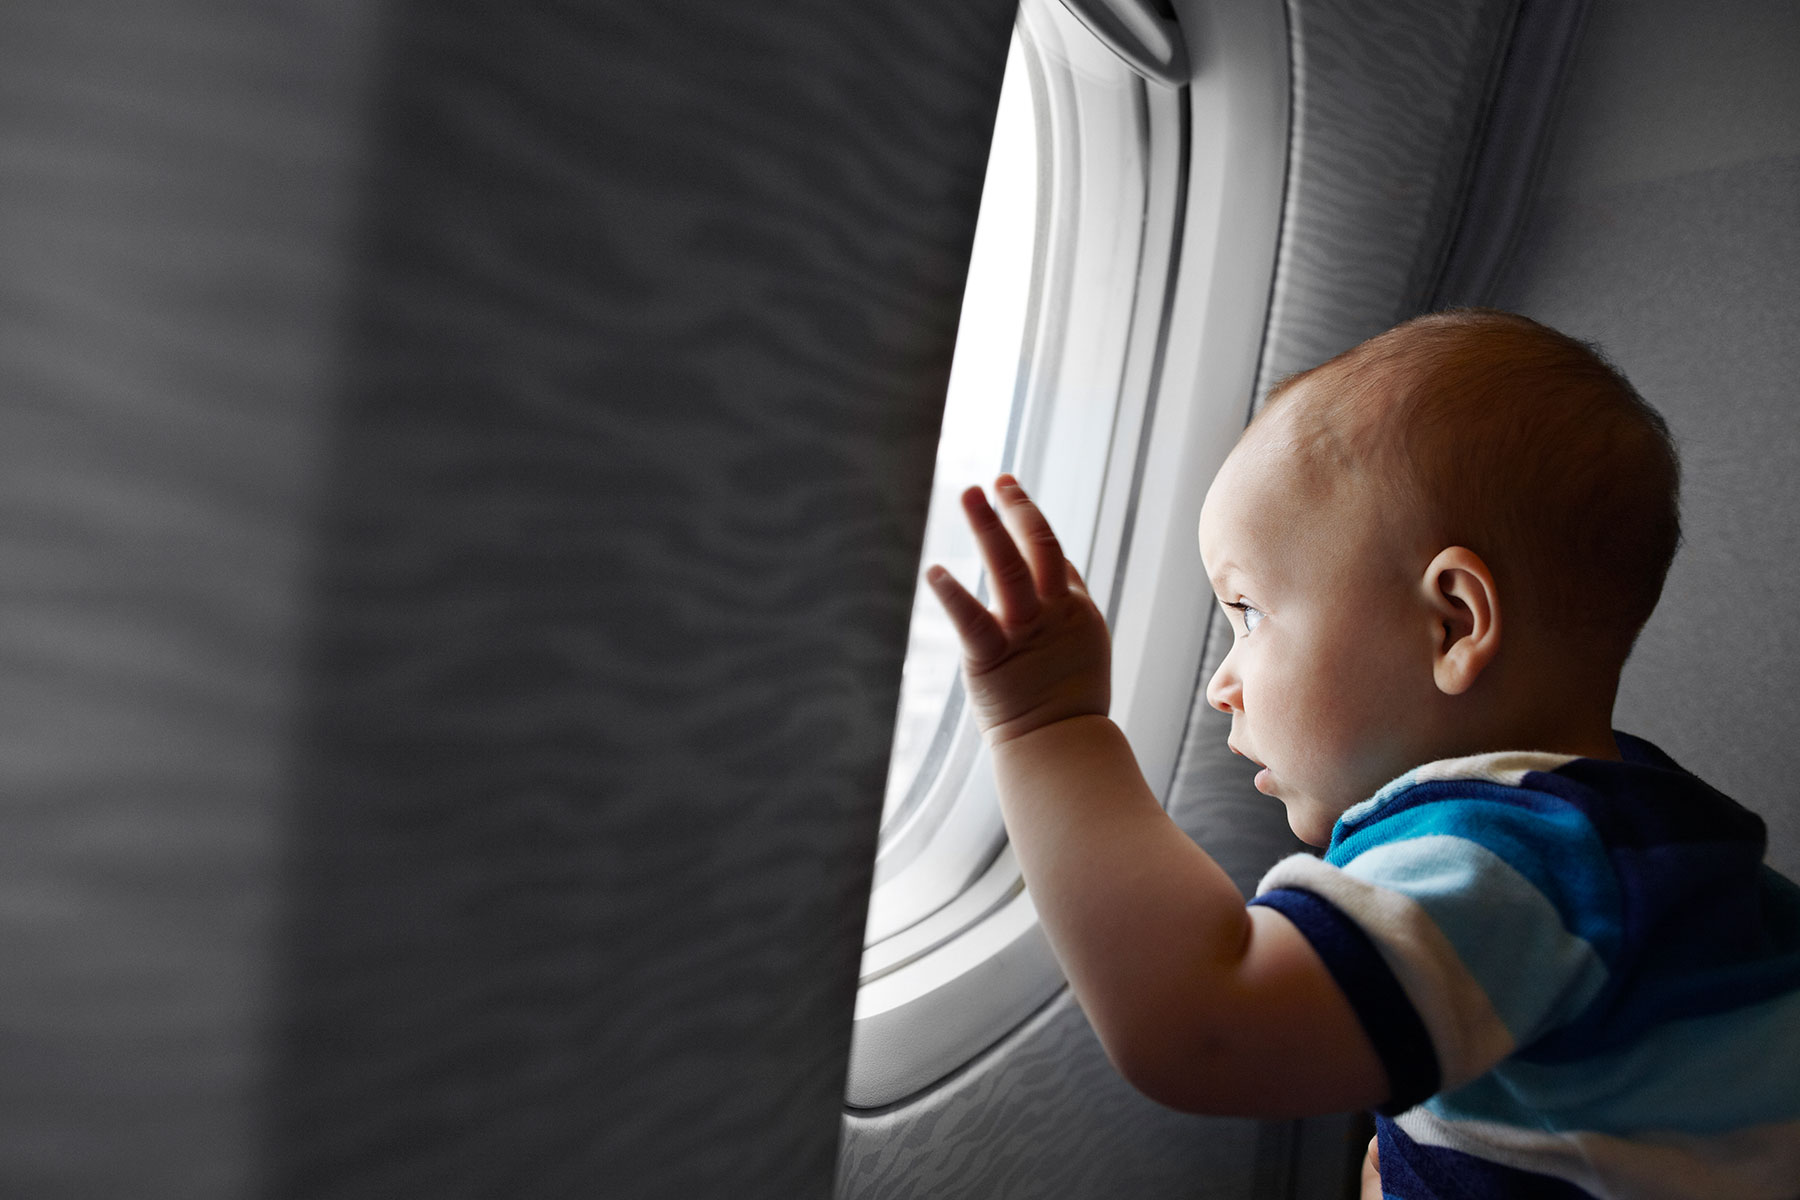 JetBlue Has a Genius Idea for Dealing With Crying Babies on a Flight